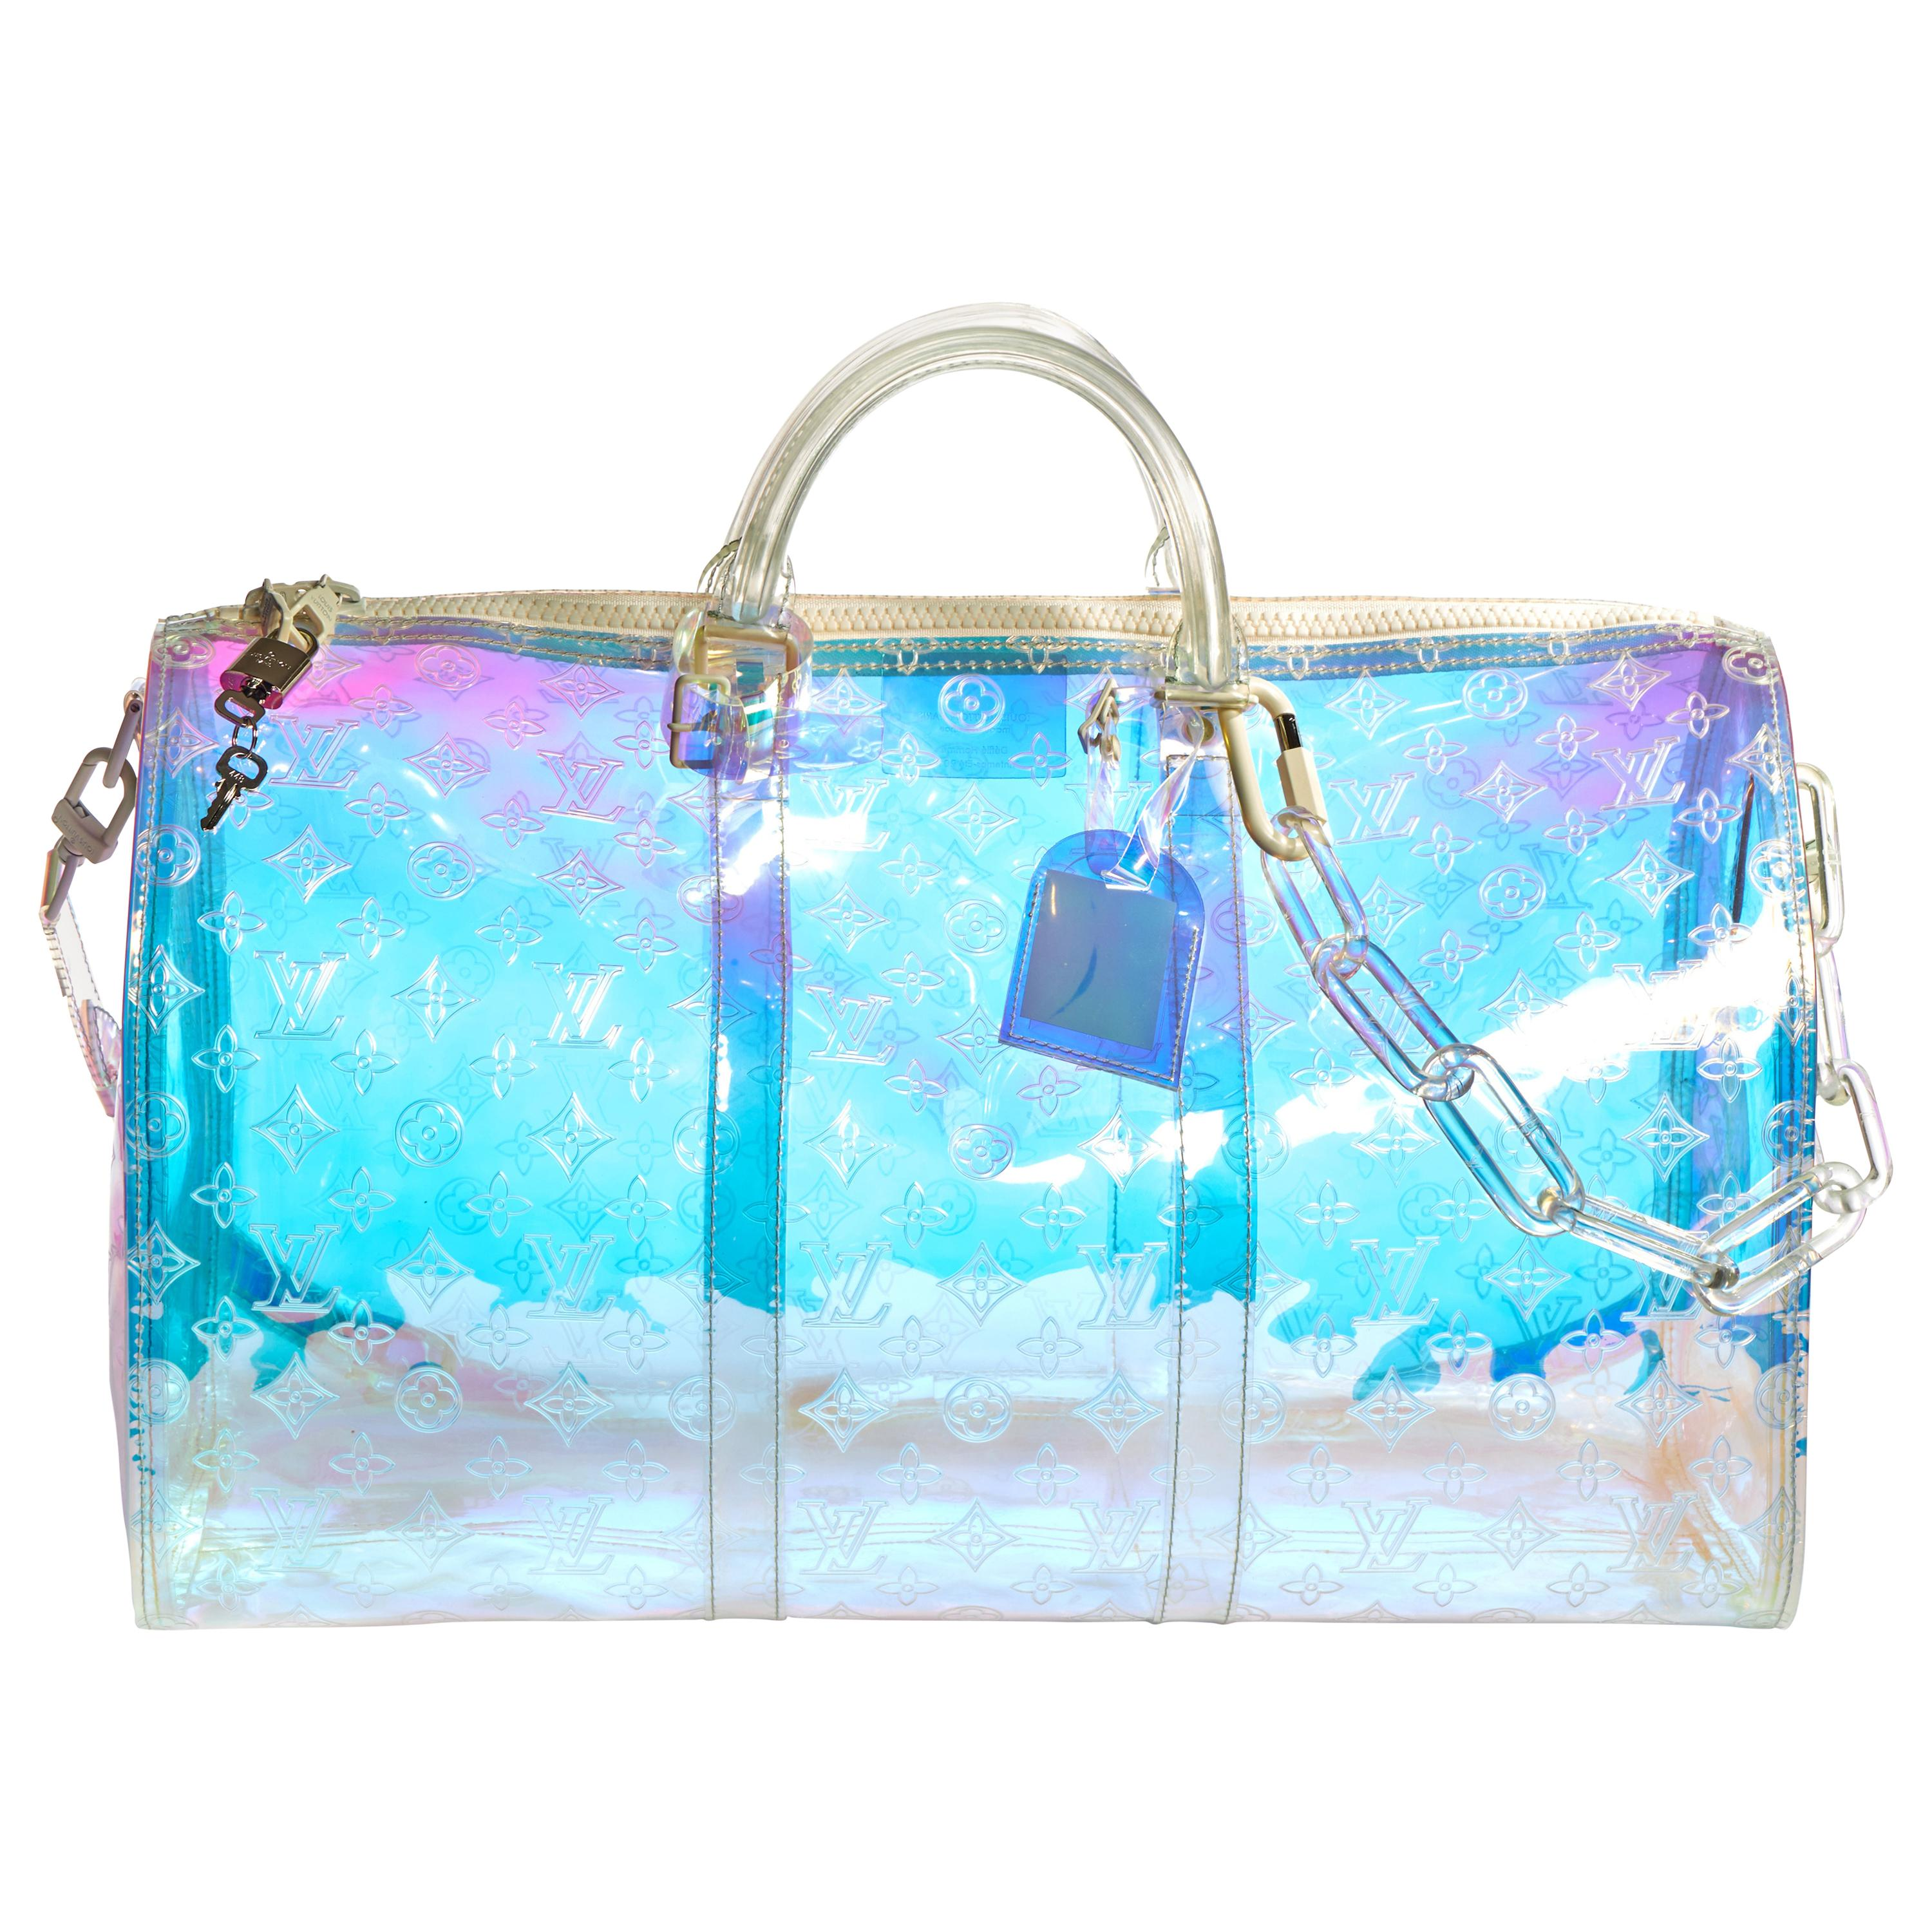 2019 SOLD OUT Vuitton Runway Prisme Bag